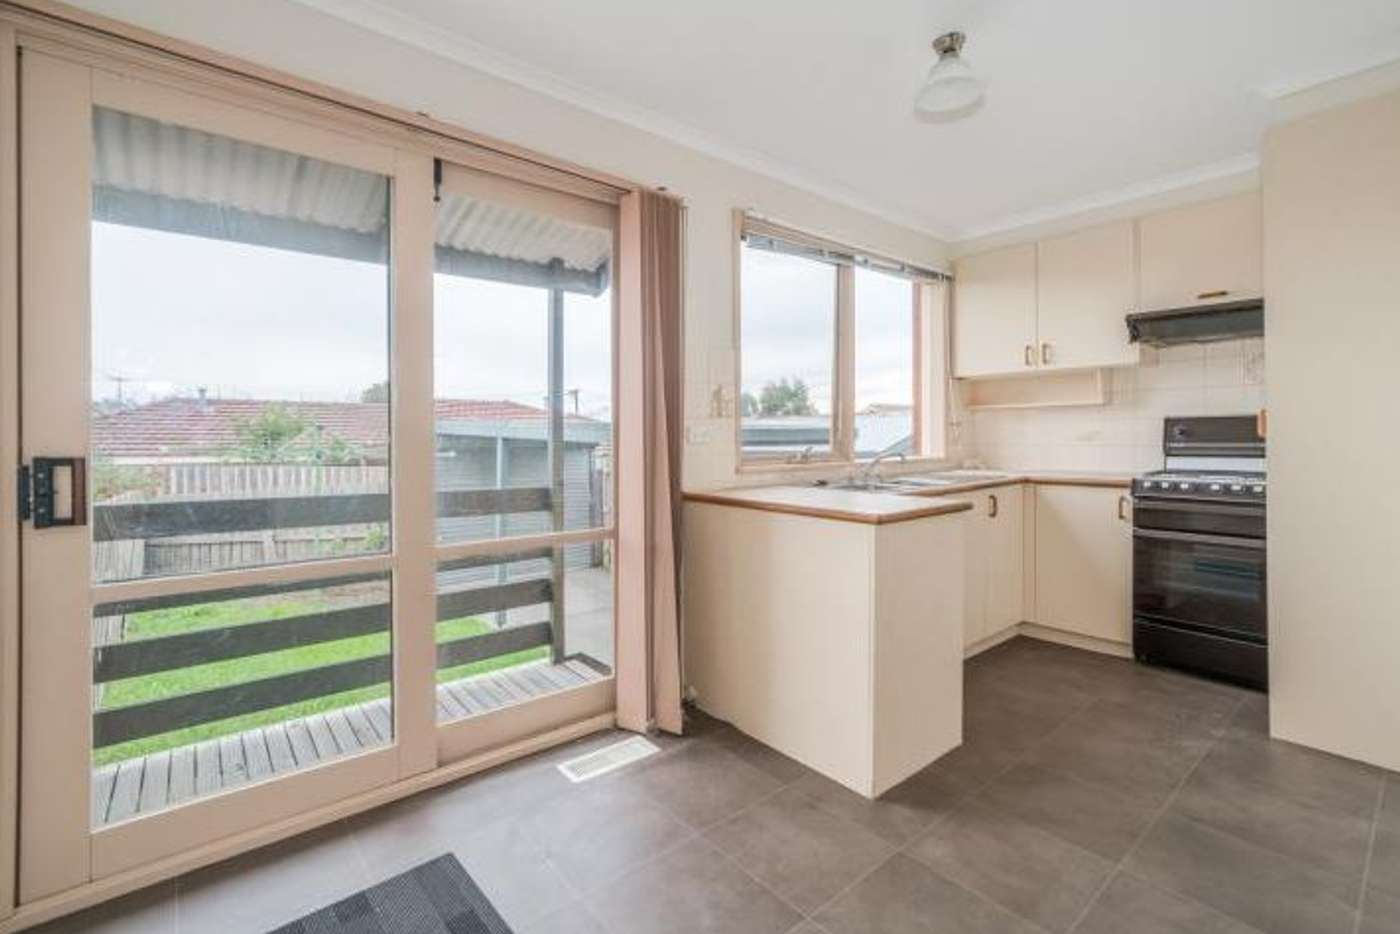 Sixth view of Homely unit listing, 1/6 Edward Street, Mitcham VIC 3132